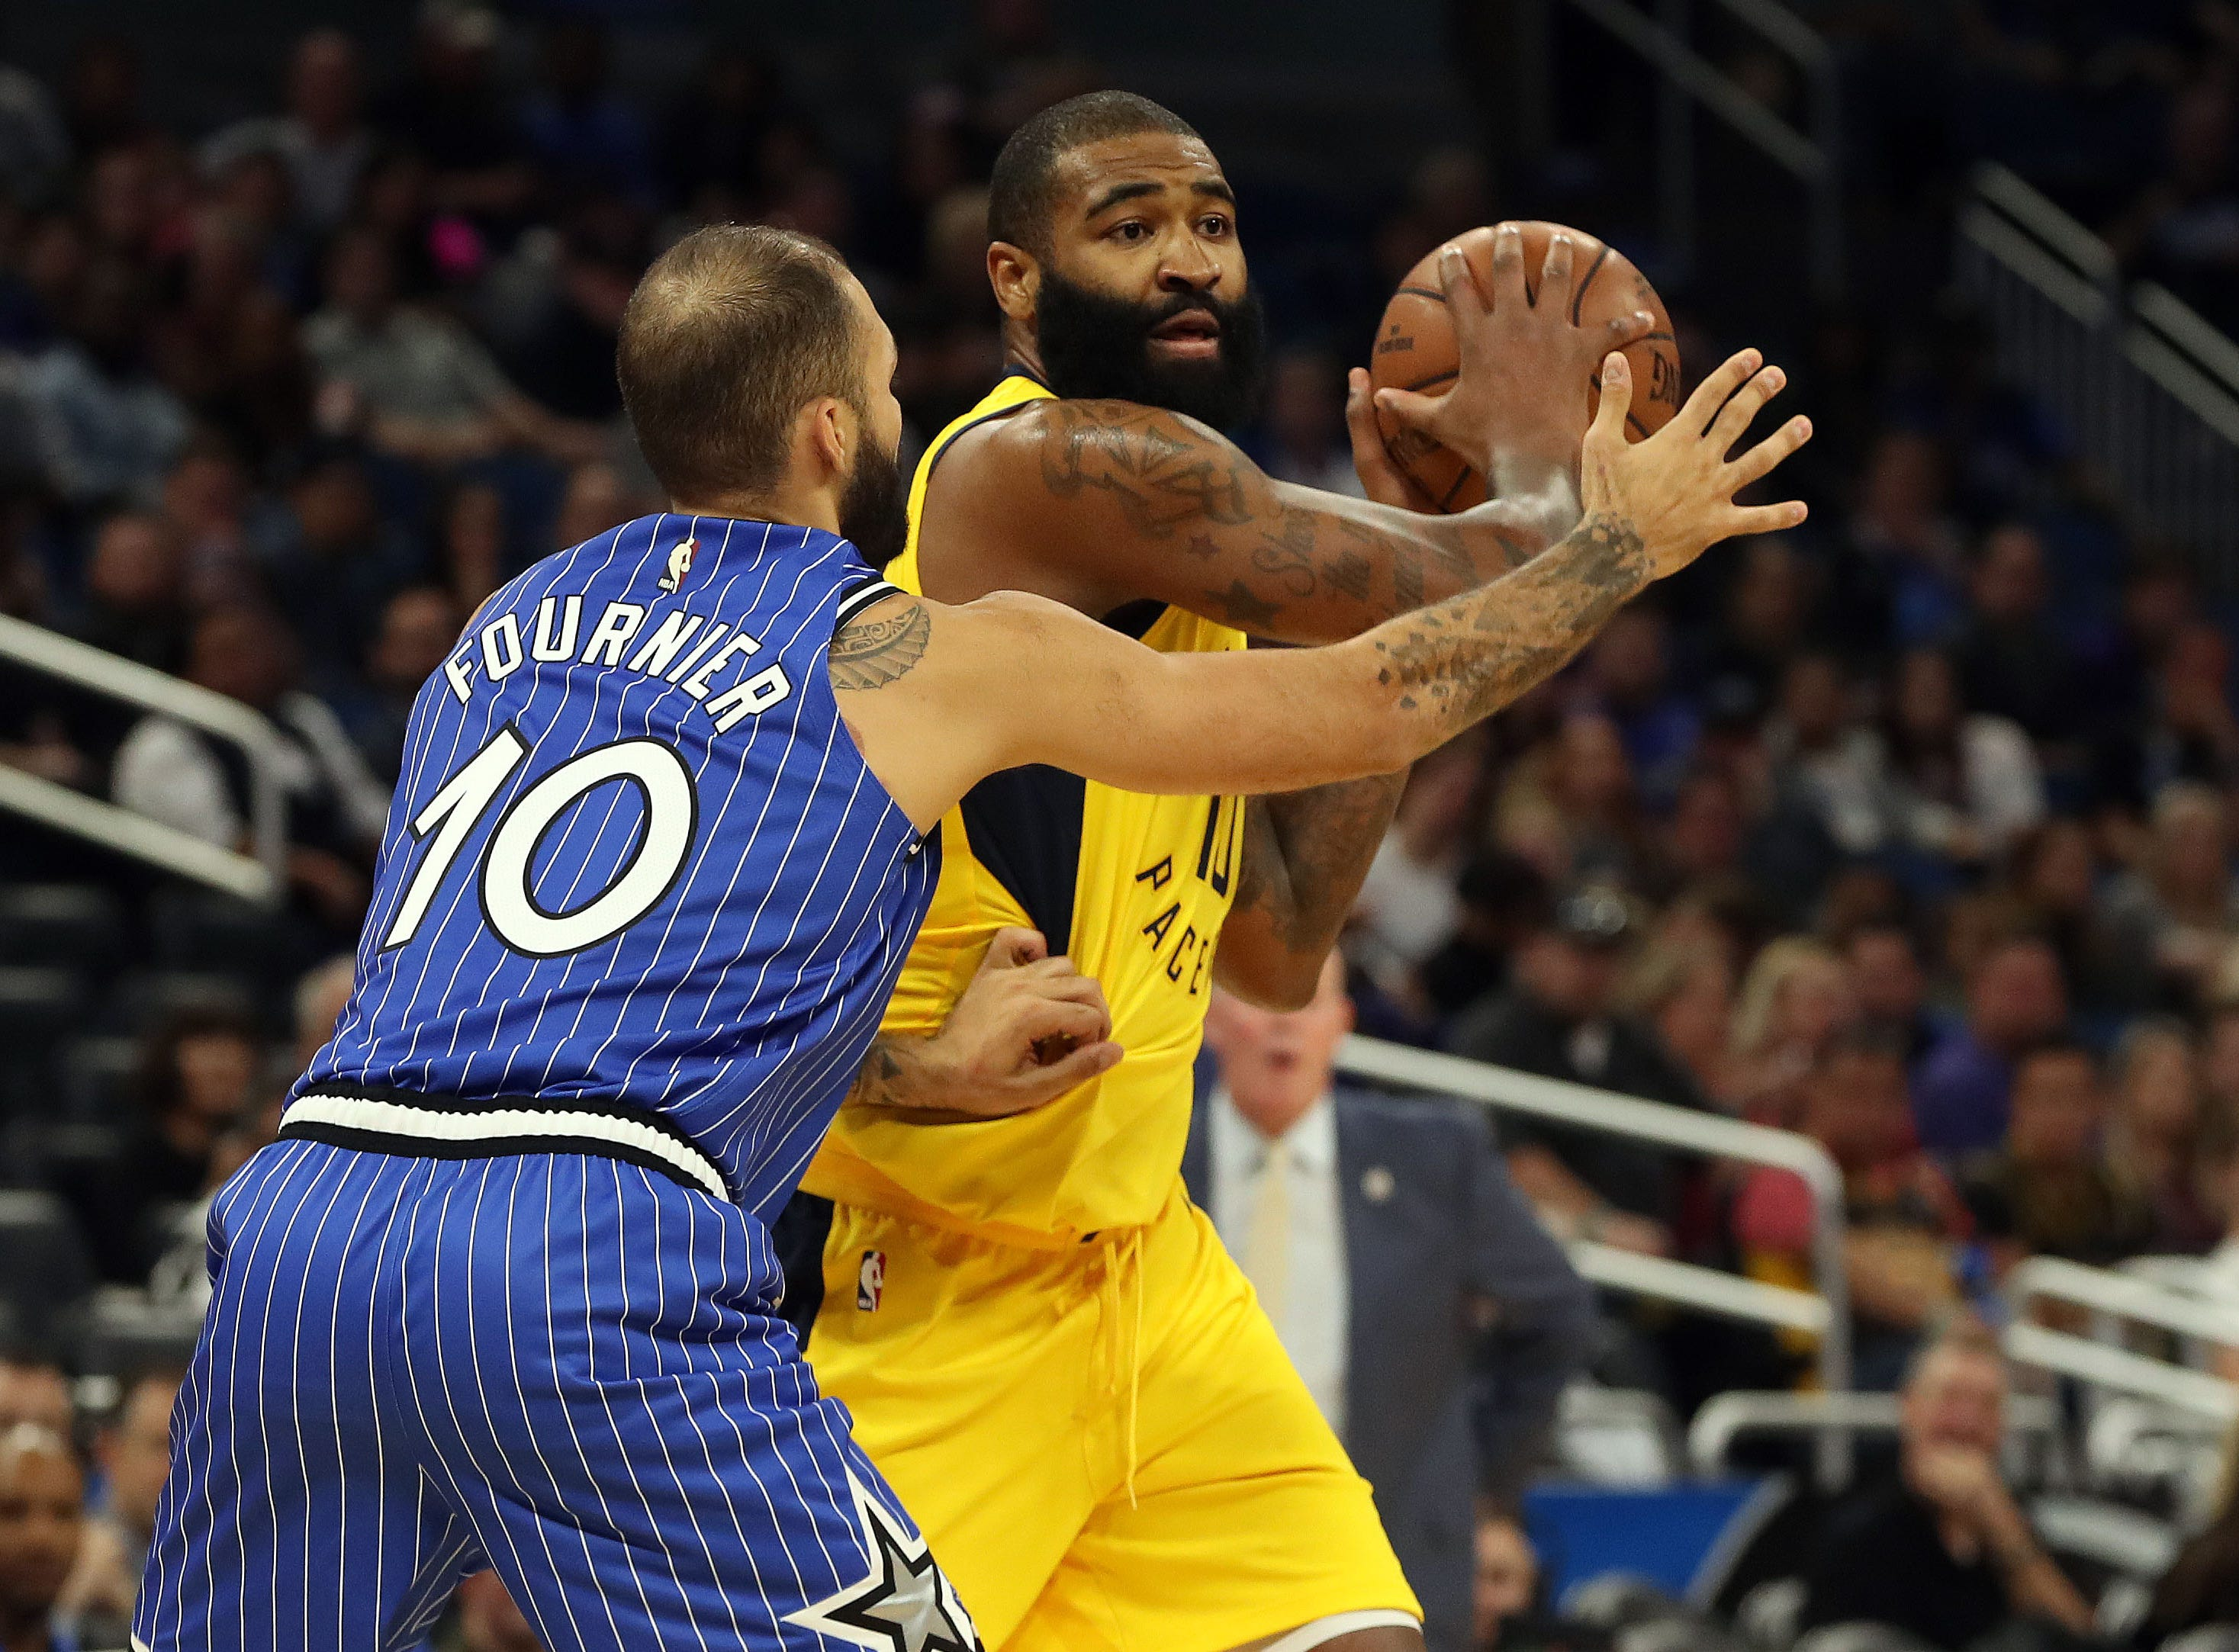 Dec 7, 2018; Orlando, FL, USA; Indiana Pacers center Kyle O'Quinn (10) passes the ball as Orlando Magic guard Evan Fournier (10) defends during the second quarter at Amway Center. Mandatory Credit: Kim Klement-USA TODAY Sports